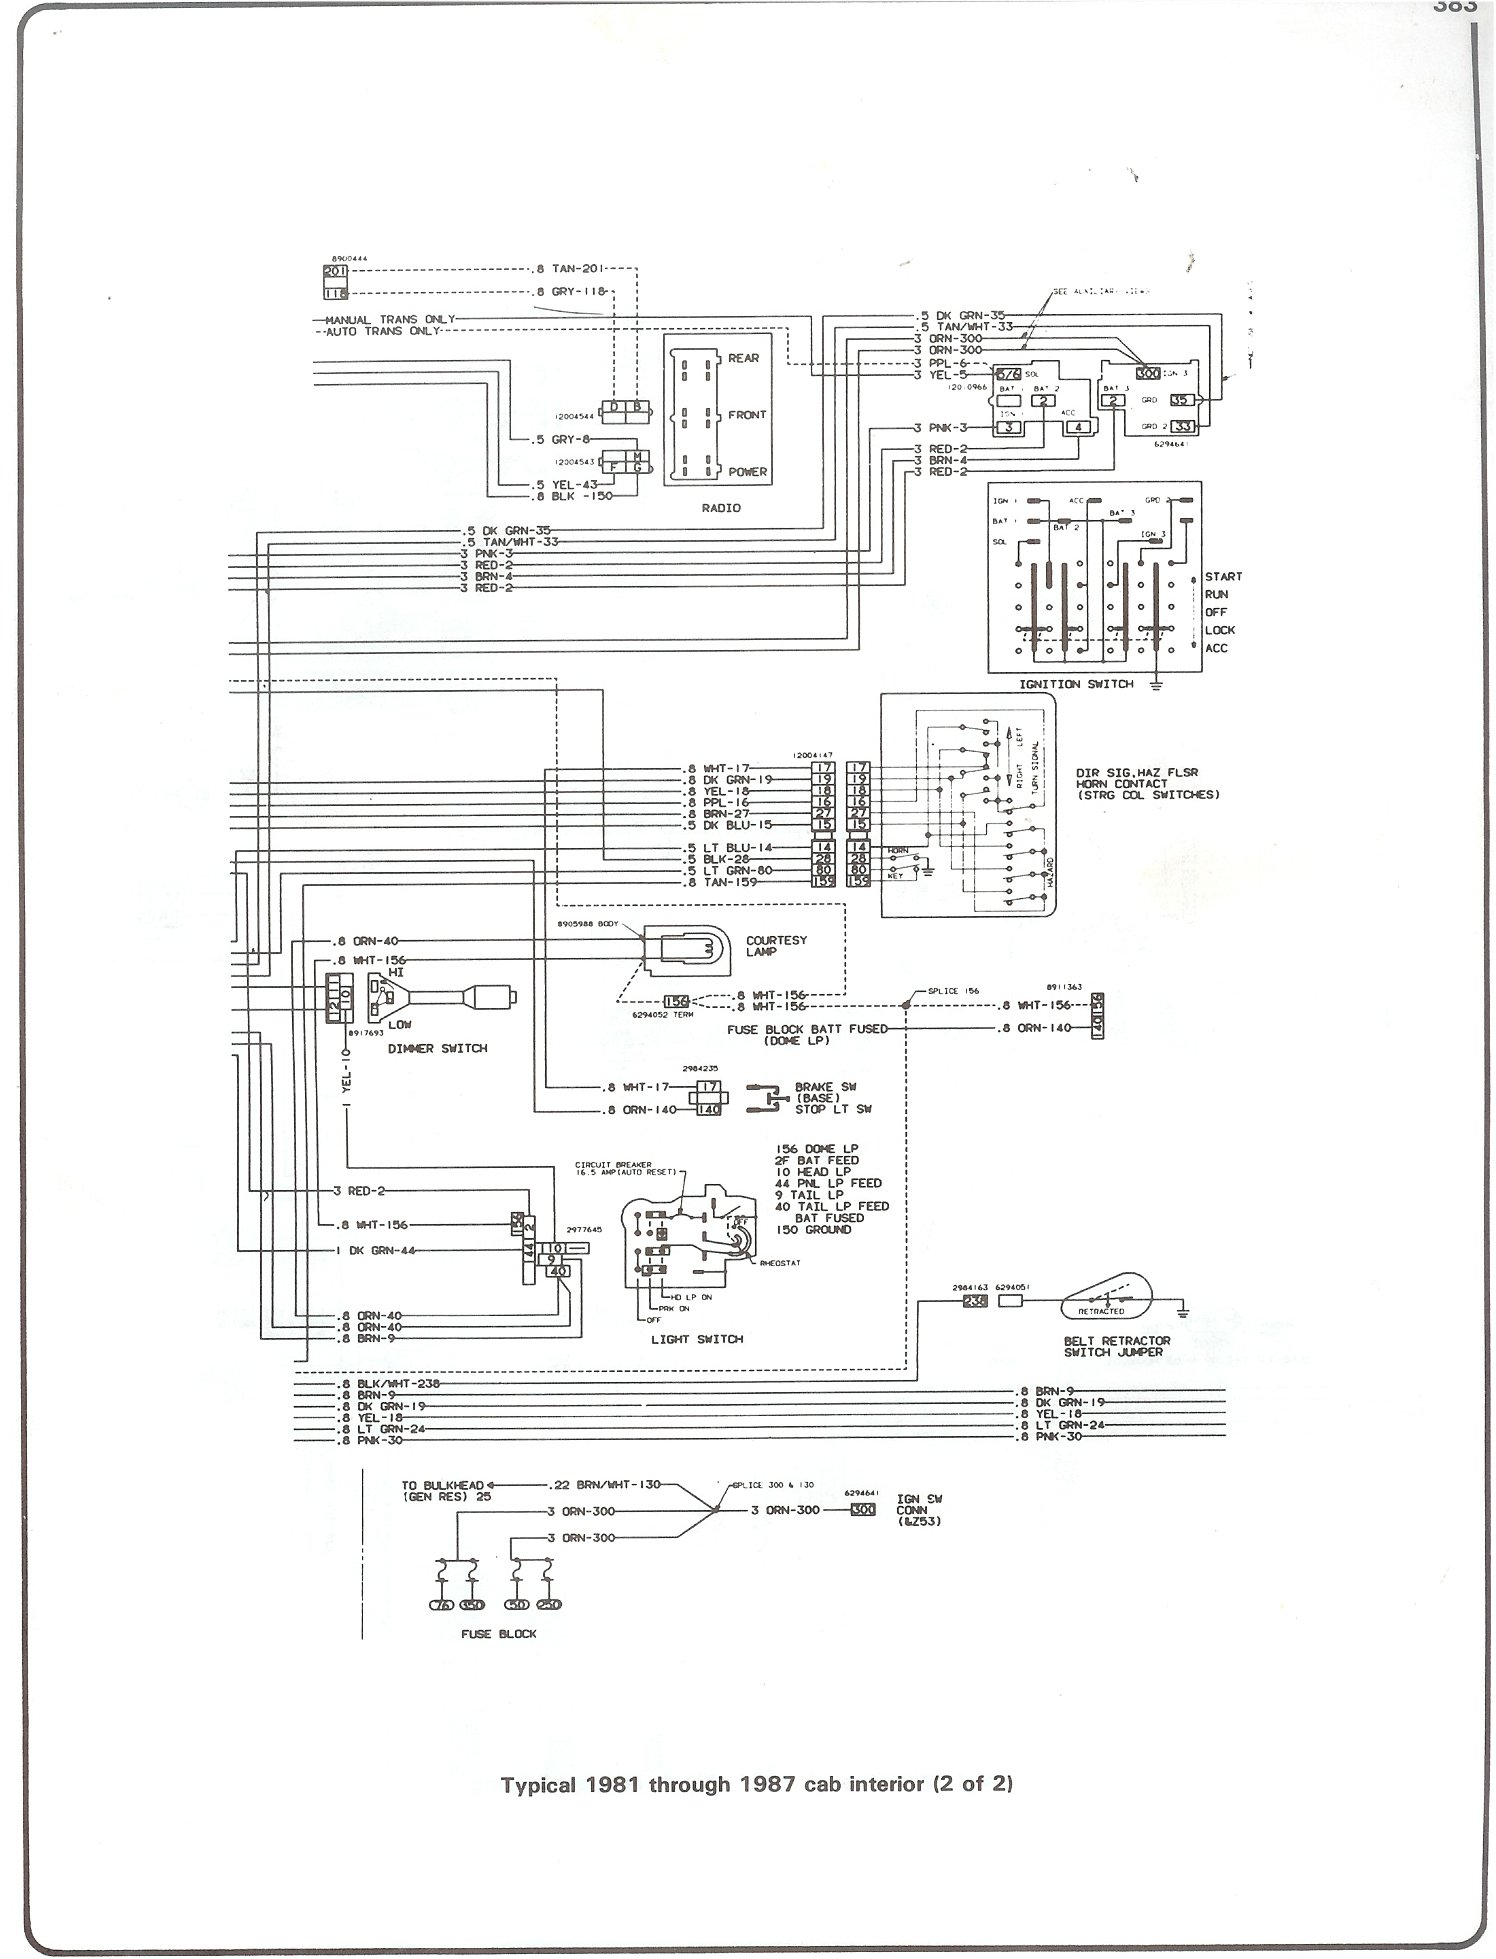 81 87_cab_inter_pg2 complete 73 87 wiring diagrams 81 corvette wiring diagram at couponss.co